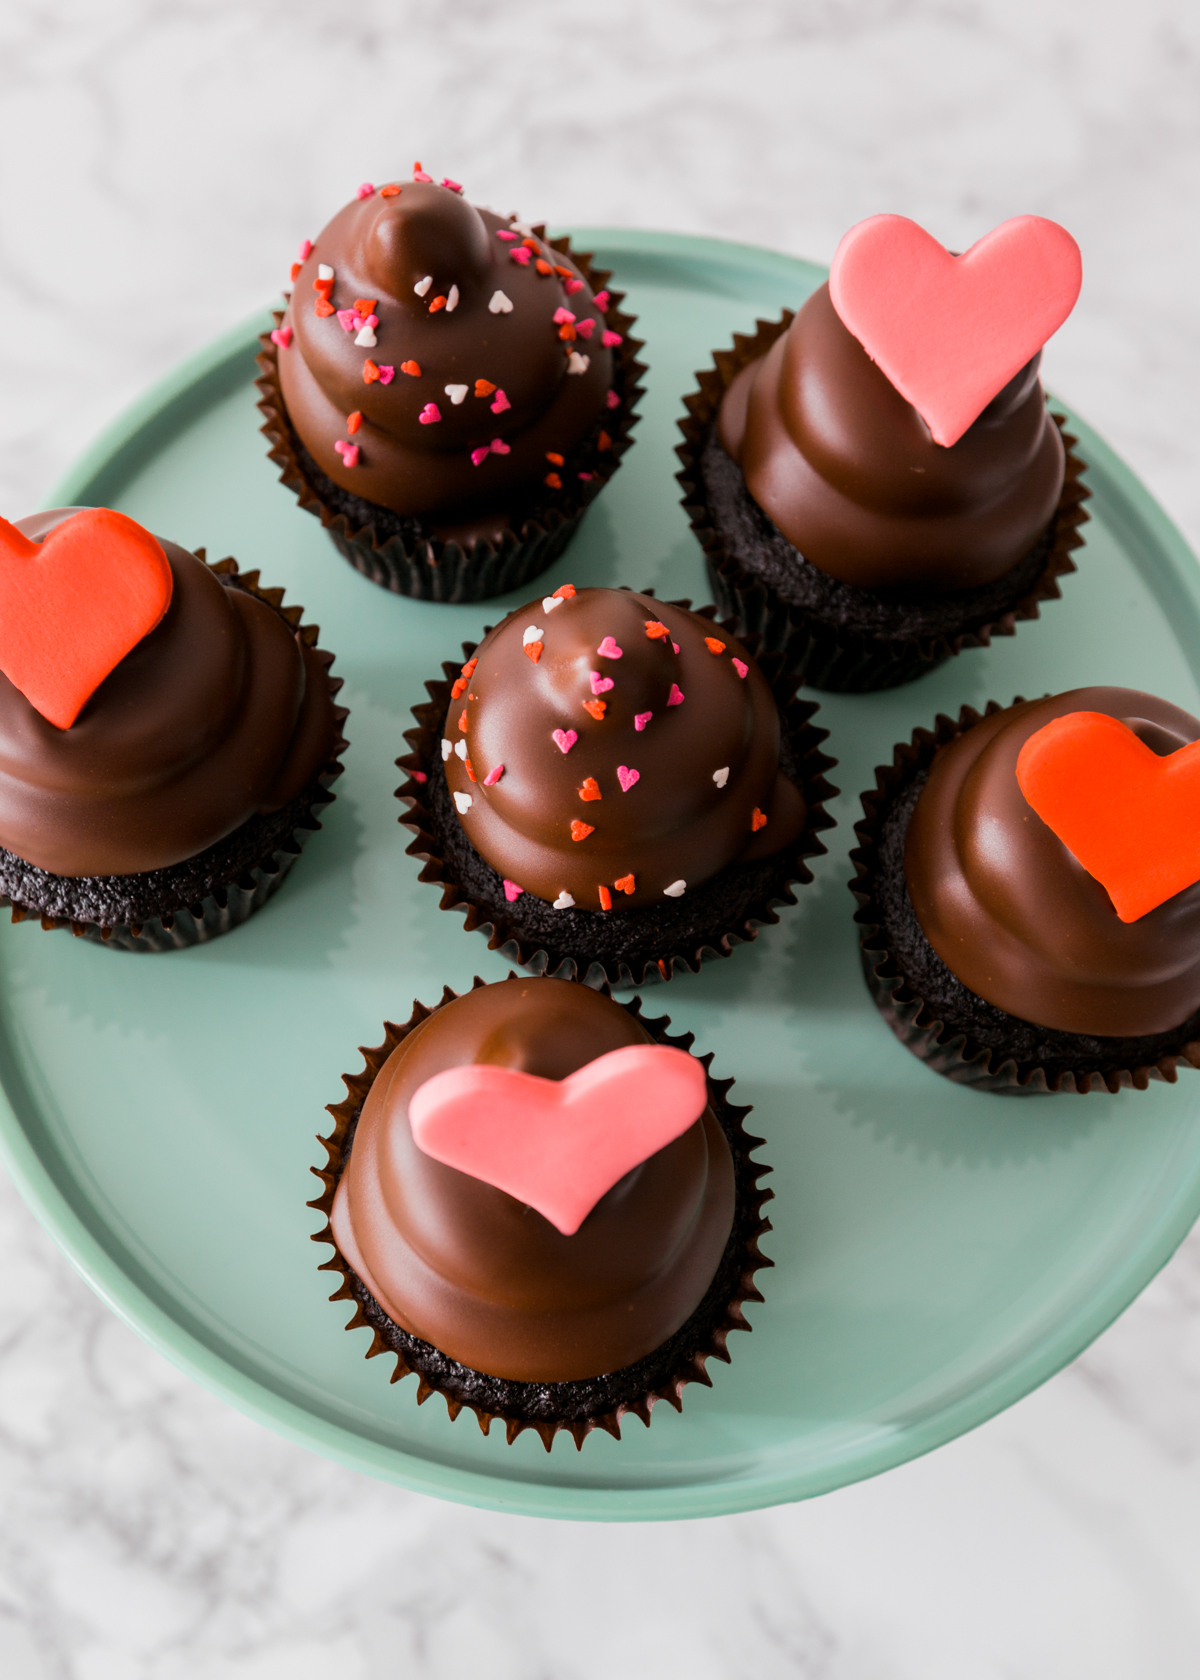 Chocolate dipped cupcakes recipe